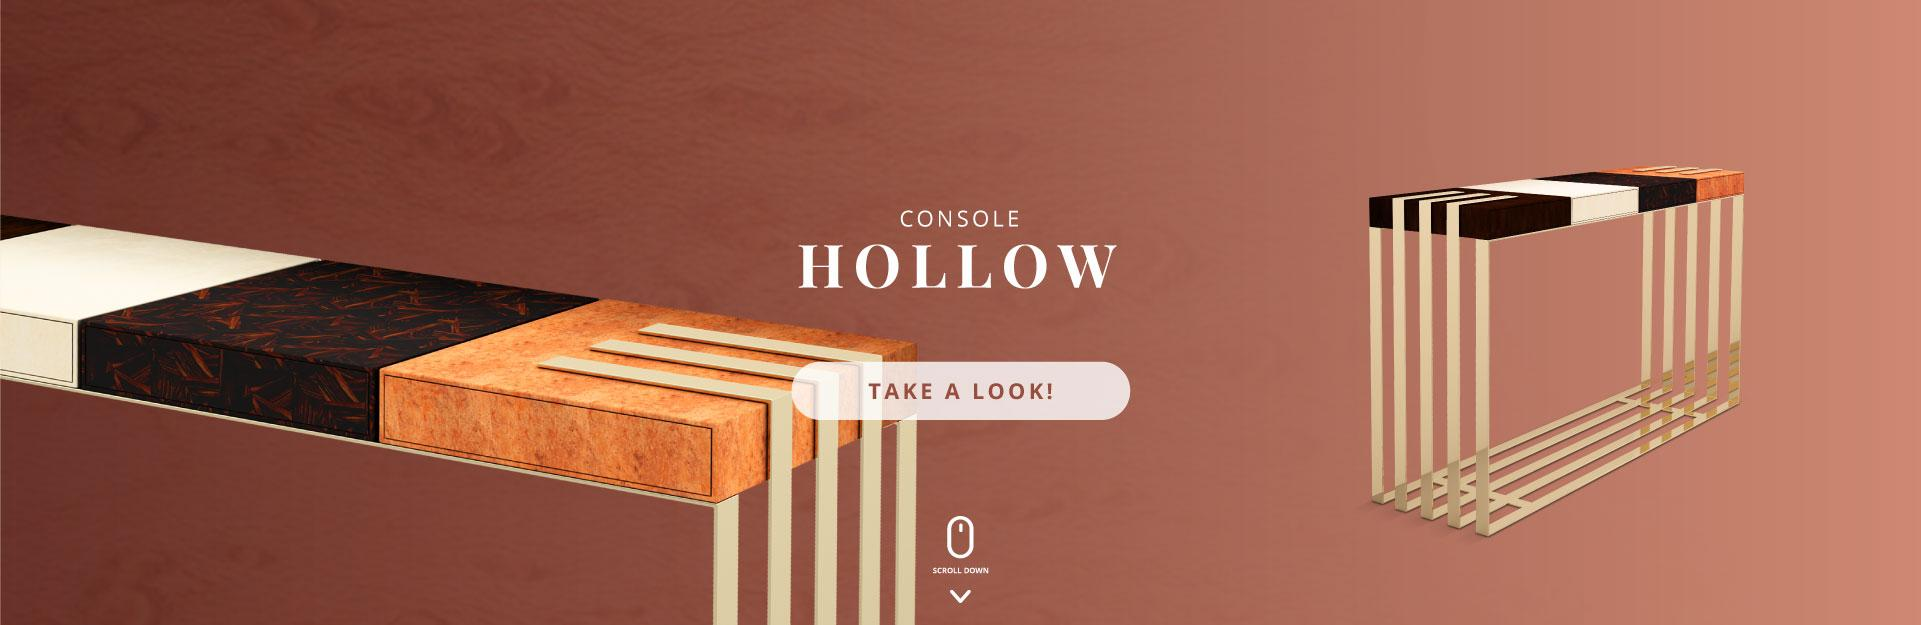 hollow-console-banner